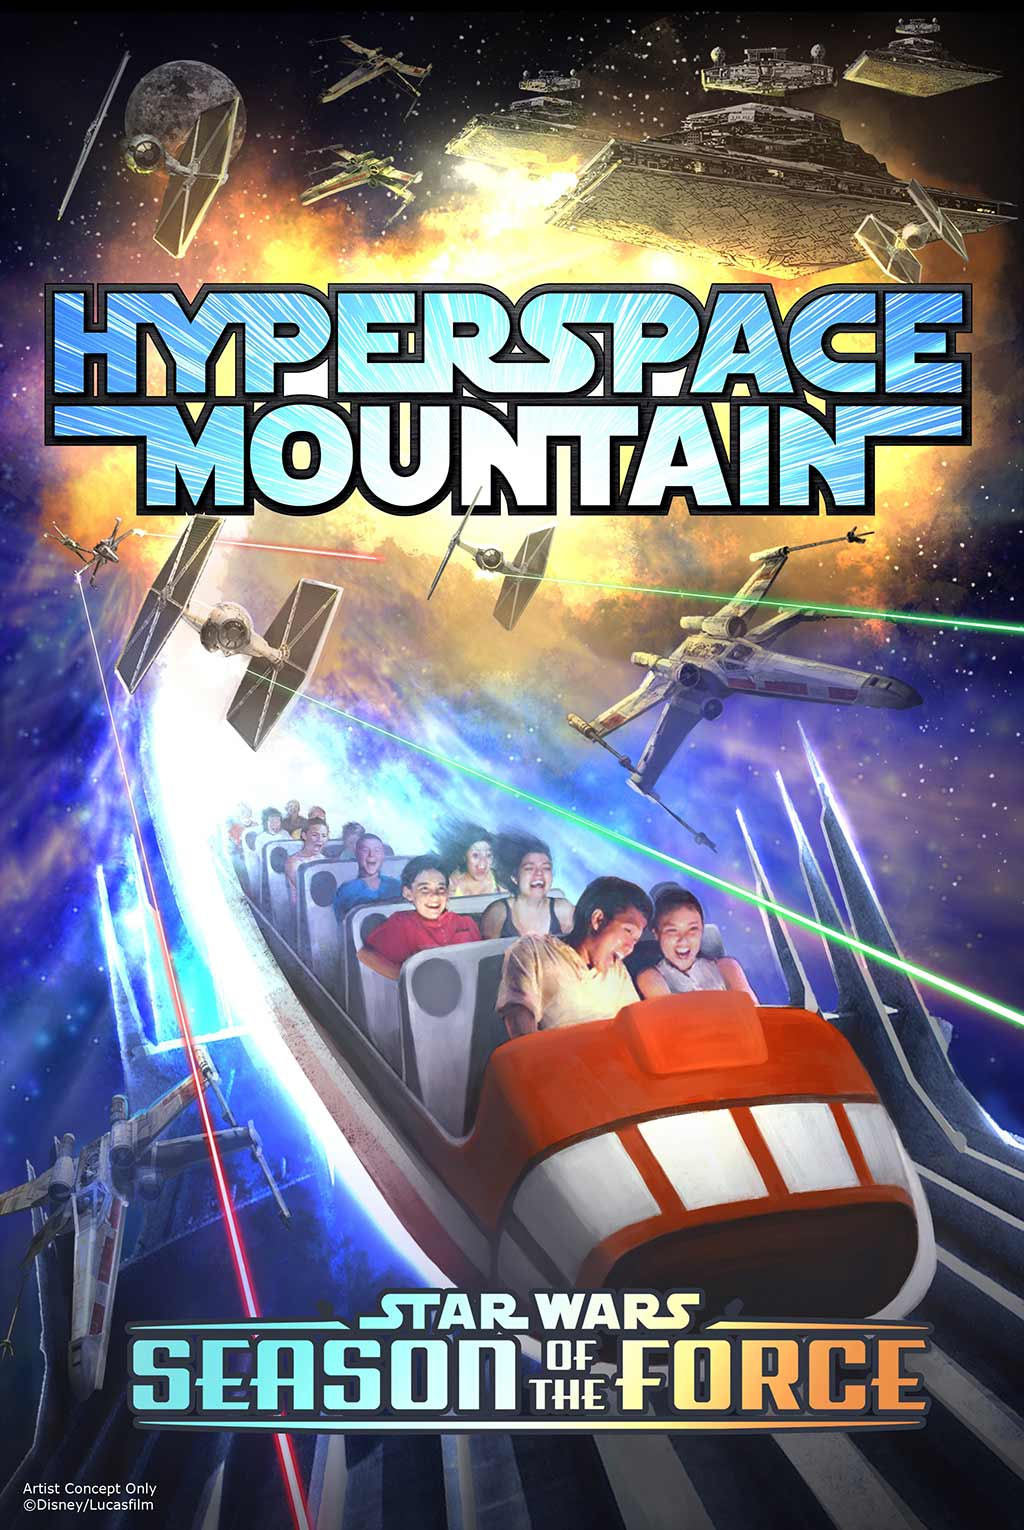 Poster for Star Wars themed Space Mountain overlay, Hyperspace Mountain